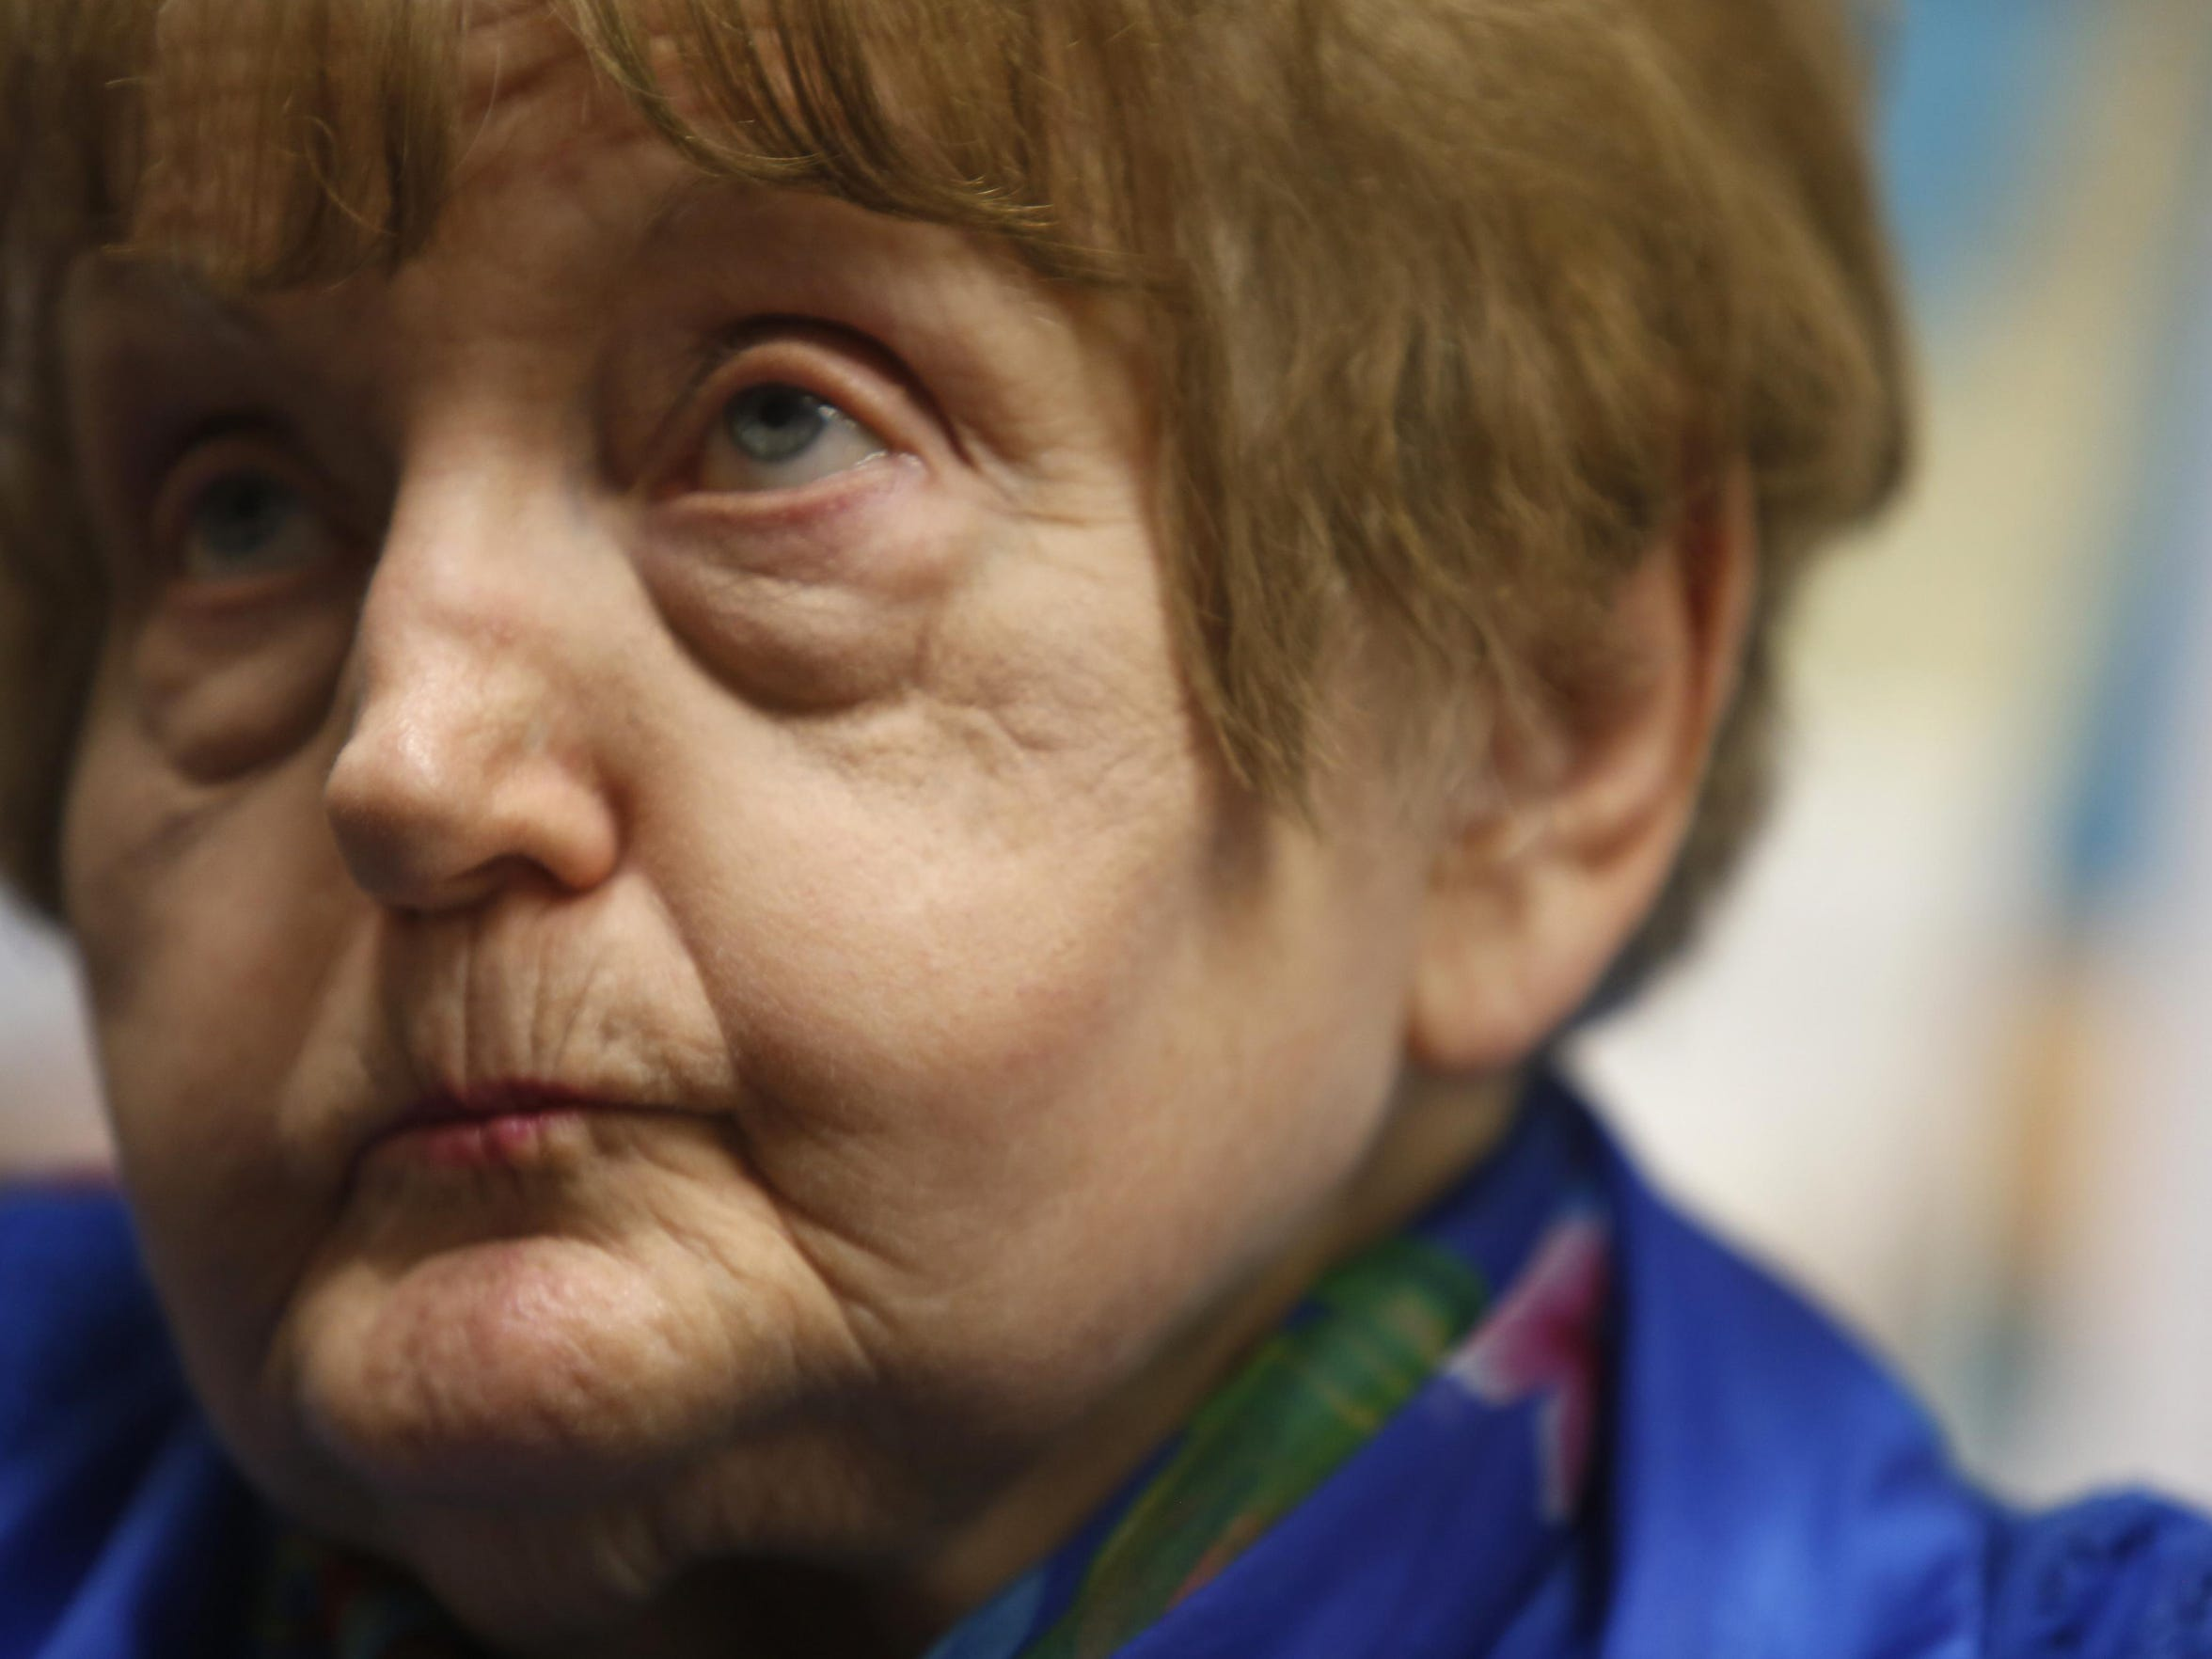 Eva Kor was interned at the Auschwitz concentration camp during World War II. Kor and her sister were Mengele twins, subjected to medical experiments by Dr. Josef Mengele while at the camp. She has spent most of her life in Terre Haute, Ind., searching for other twins and information on the experiments that were performed on them.